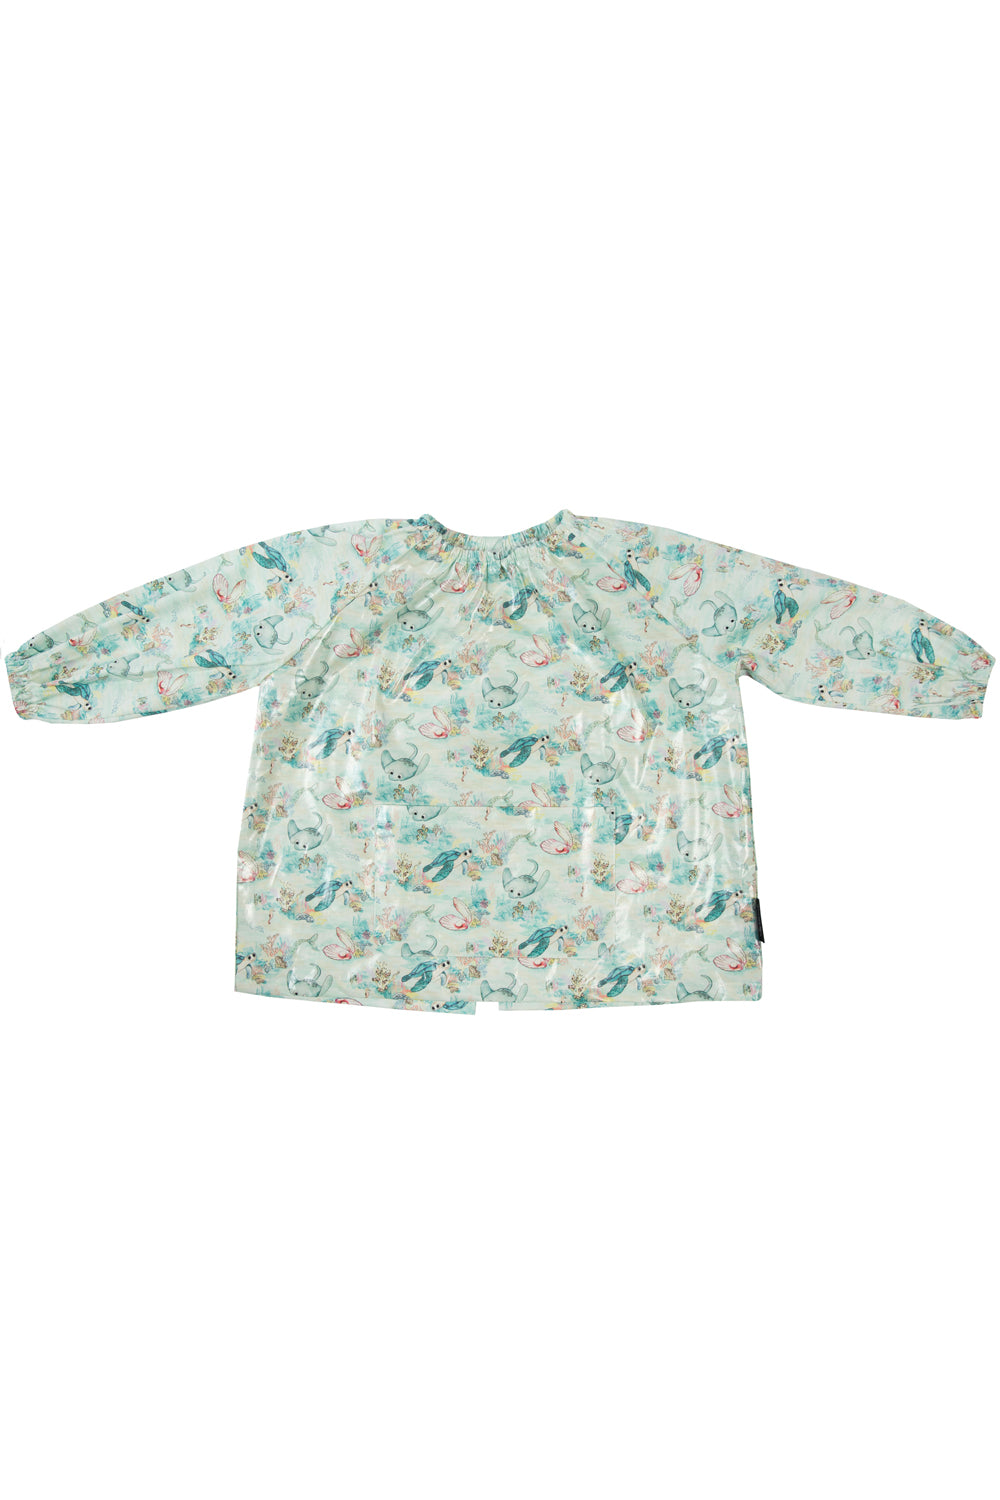 Lady Elliot Island Art Smock